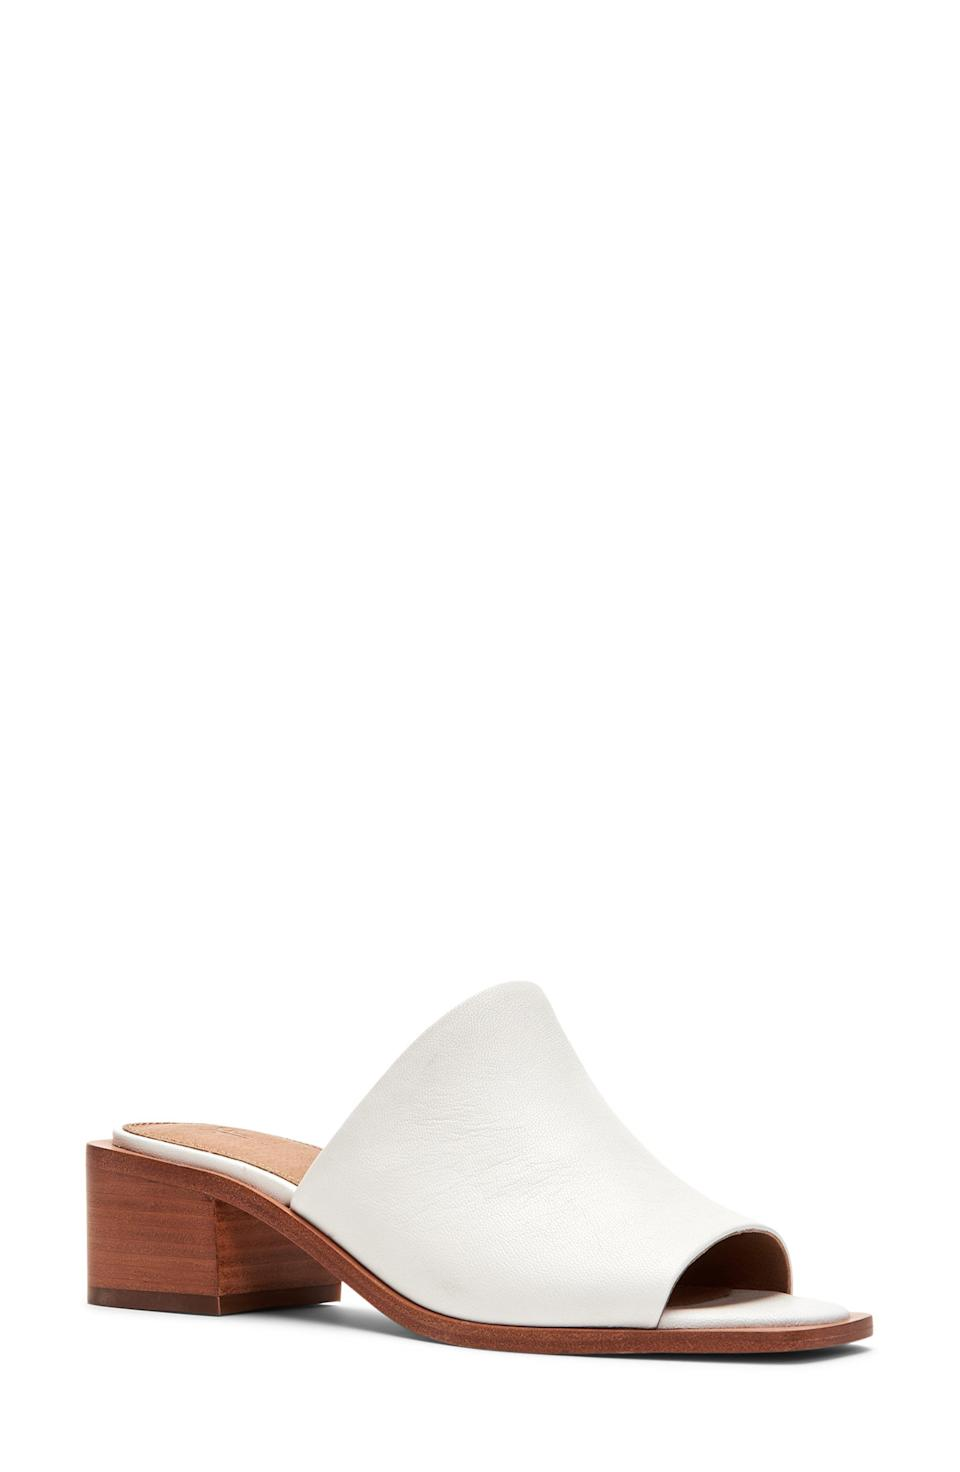 """<p><strong>Frye</strong></p><p>nordstrom.com</p><p><strong>$198.00</strong></p><p><a href=""""https://go.redirectingat.com?id=74968X1596630&url=https%3A%2F%2Fwww.nordstrom.com%2Fs%2Ffrye-lucia-slide-sandal-women%2F6016491&sref=https%3A%2F%2Fwww.townandcountrymag.com%2Fstyle%2Ffashion-trends%2Fg36384322%2Fbest-sandals-for-women%2F"""" rel=""""nofollow noopener"""" target=""""_blank"""" data-ylk=""""slk:Shop Now"""" class=""""link rapid-noclick-resp"""">Shop Now</a></p><p>Minimalists will love this demure, do it all shoe. Its 1.75 heel is just high enough to add a dressy touch while staying comfy enough for all-day wear. </p>"""